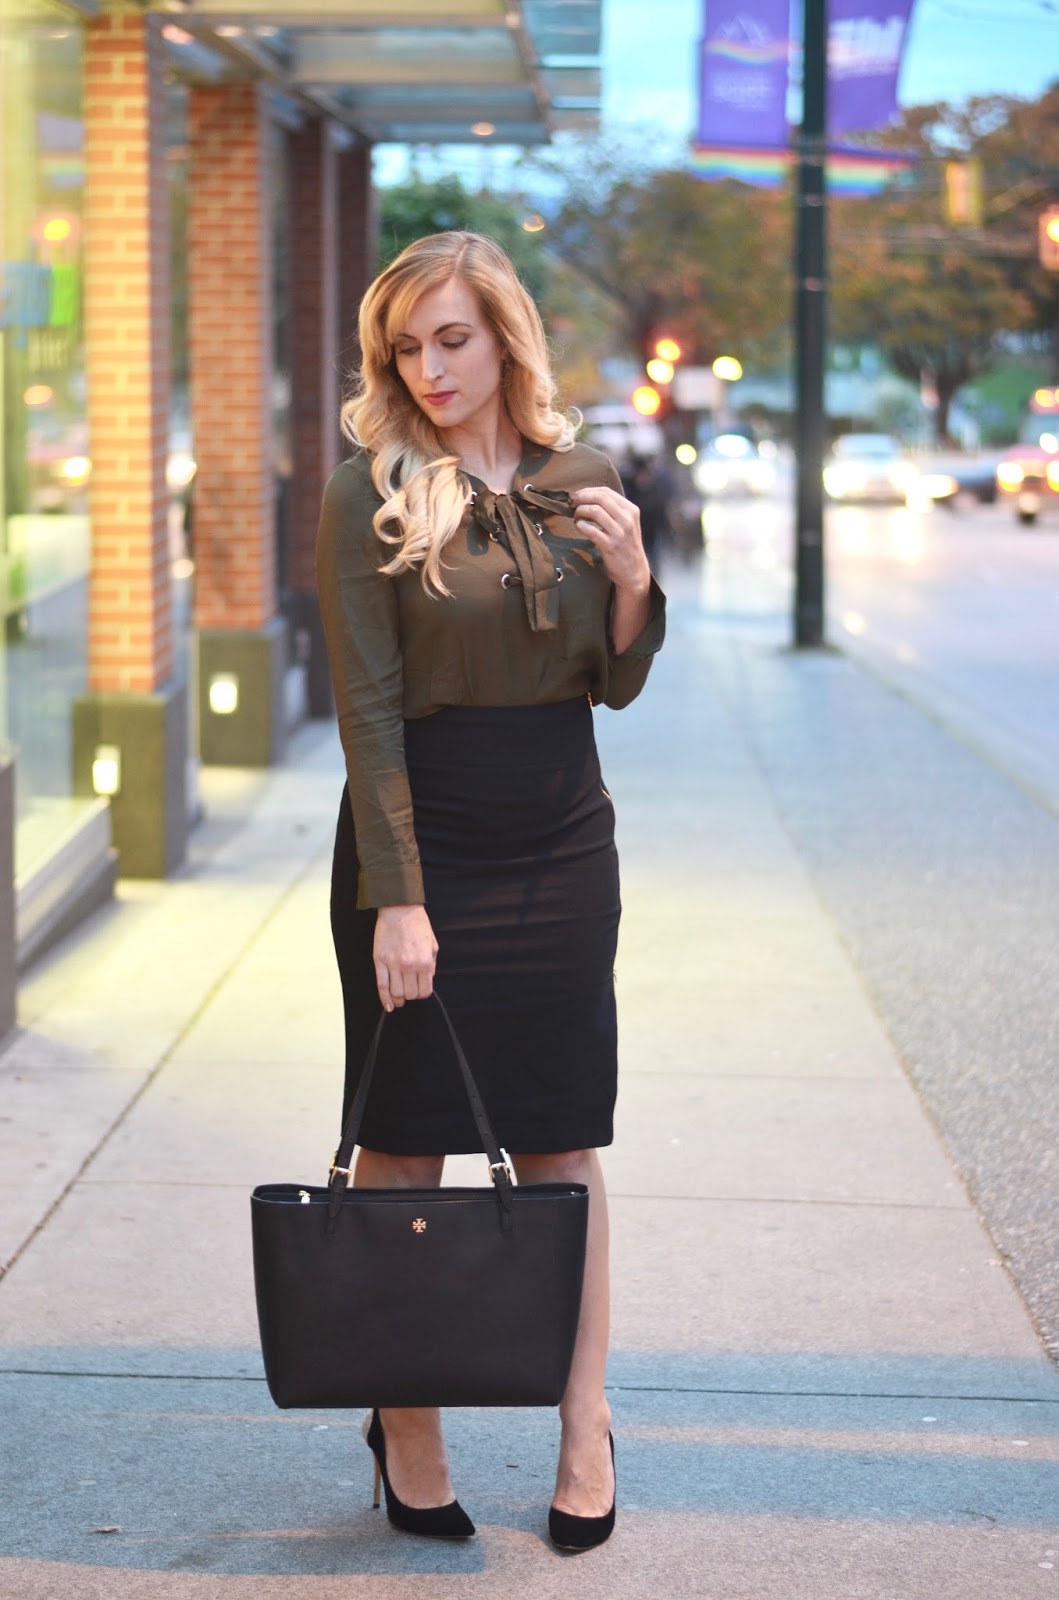 lace up blouse and pencil skirt look